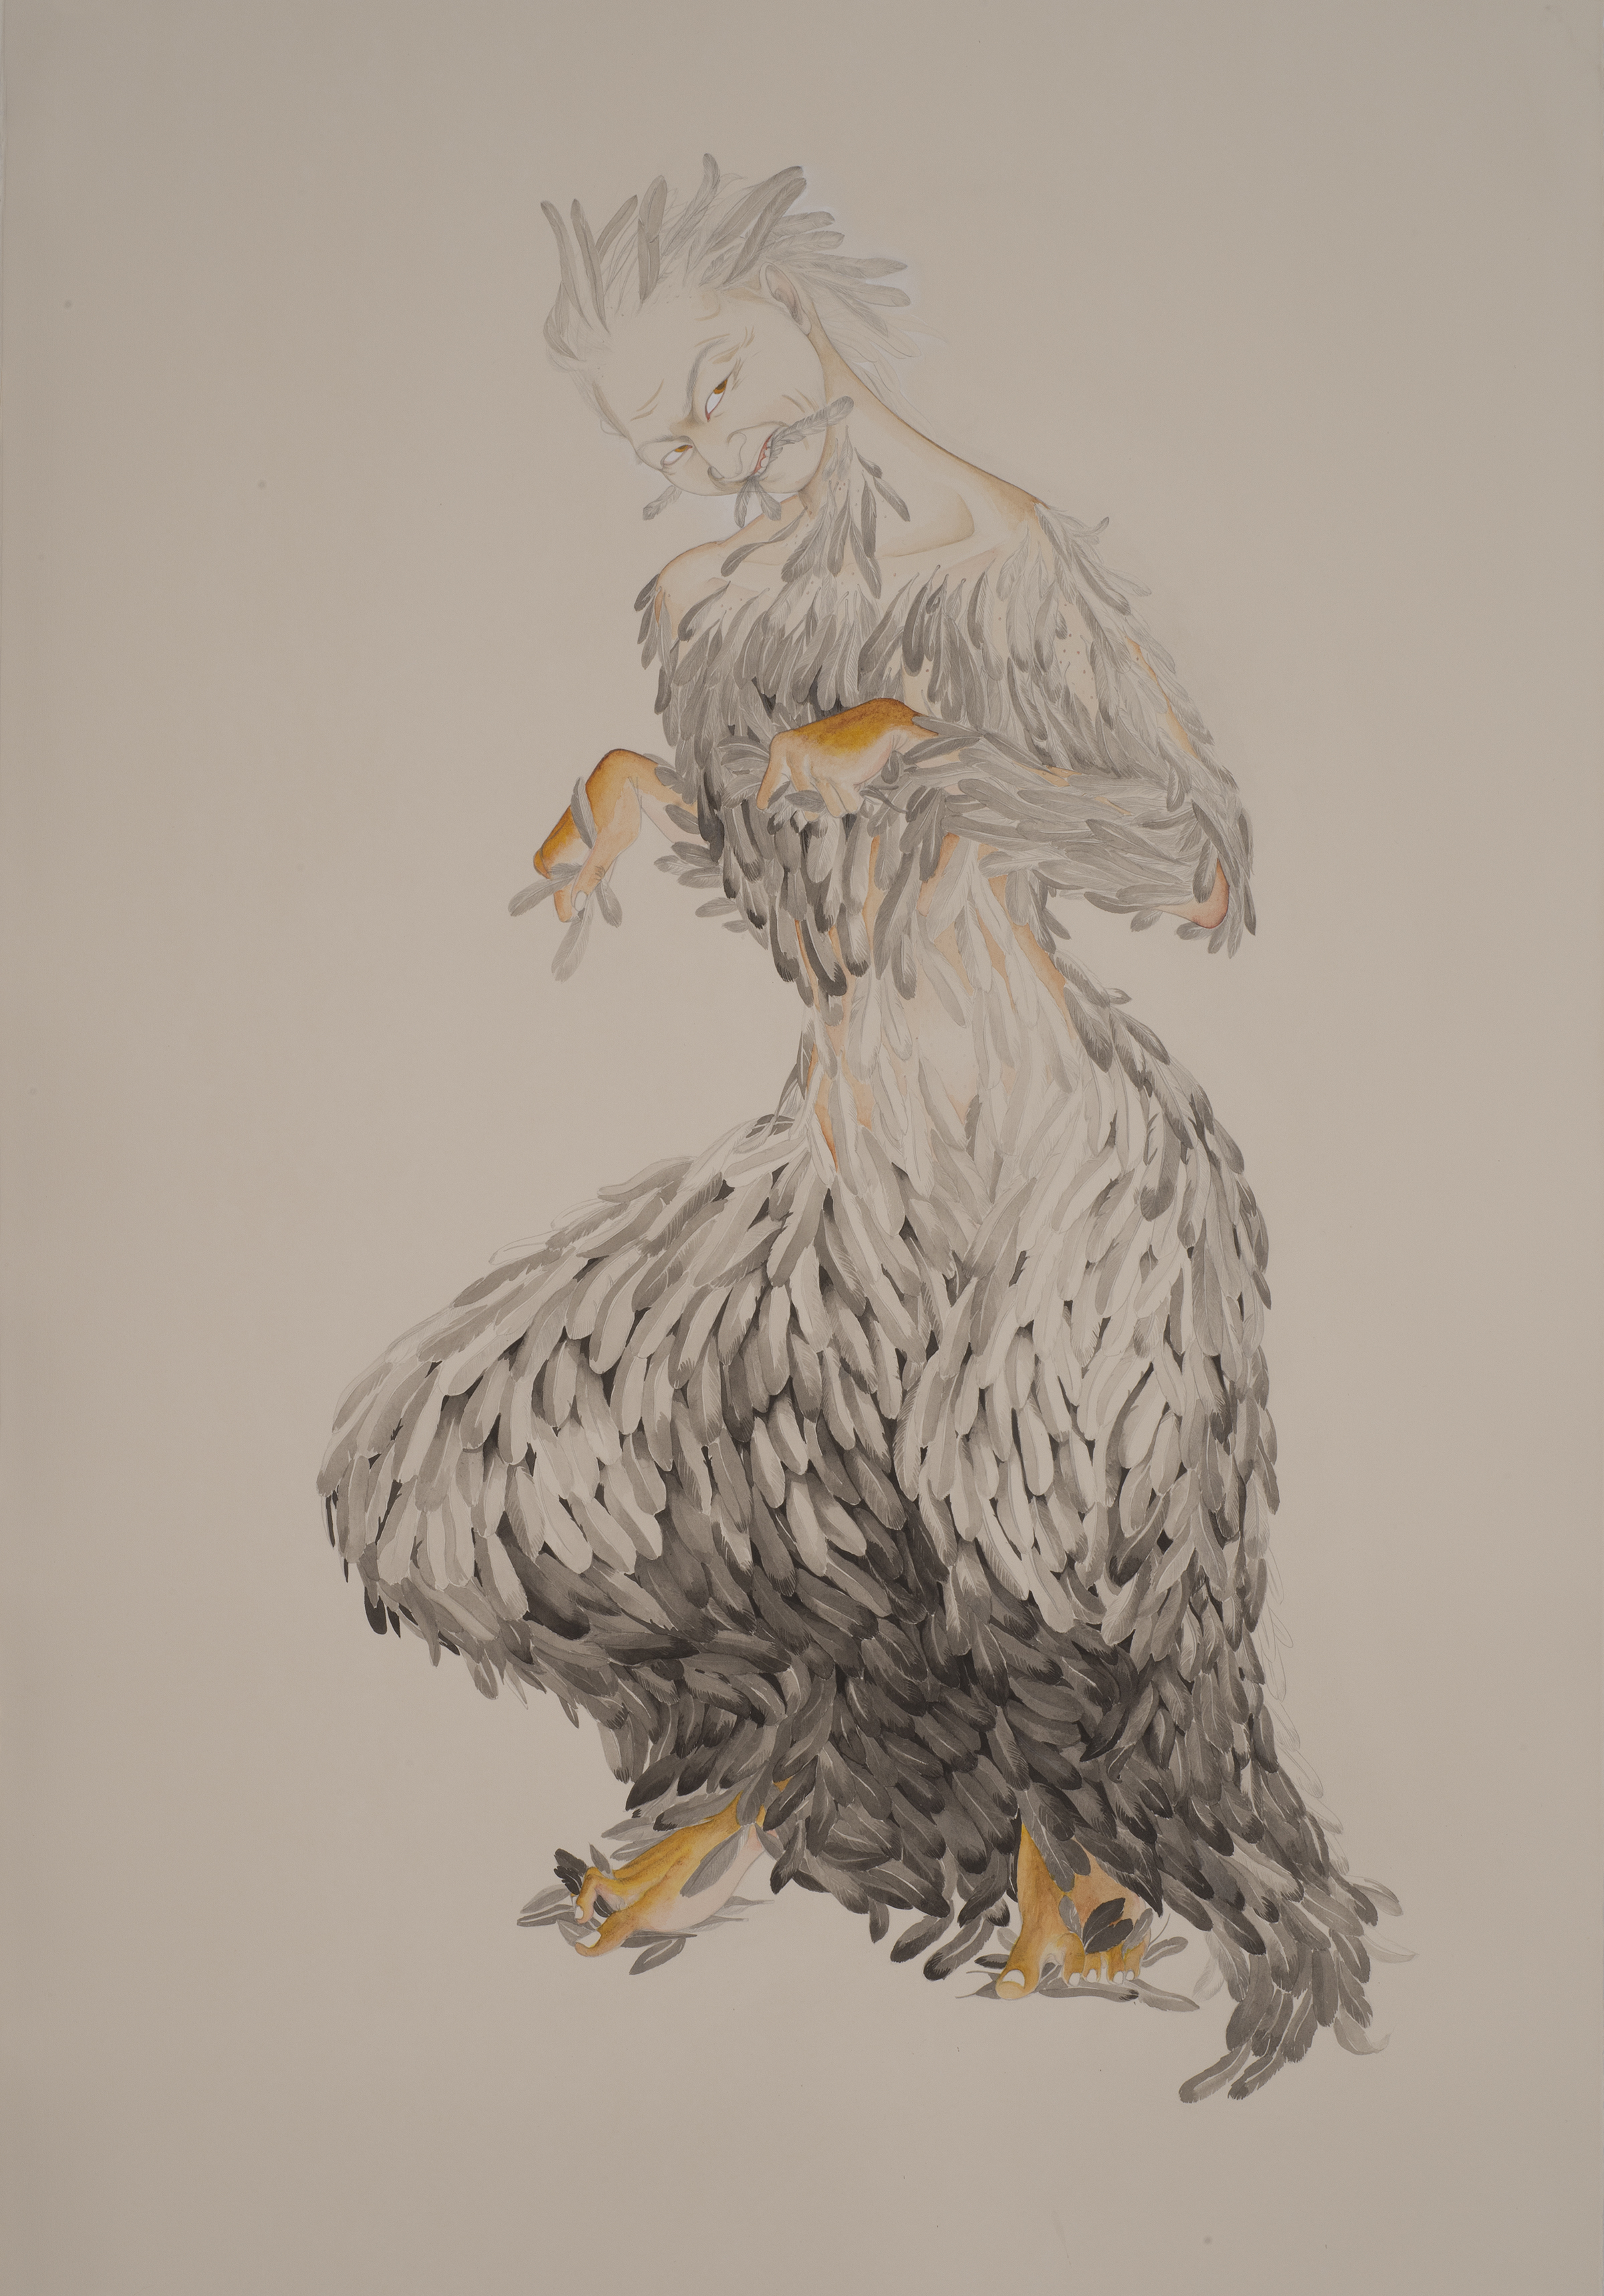 Preen , 2013 Graphite, watercolor, ink on ivory Fabriana Rosaspina 39 x 27.5 inches Photo: Bill Orcutt